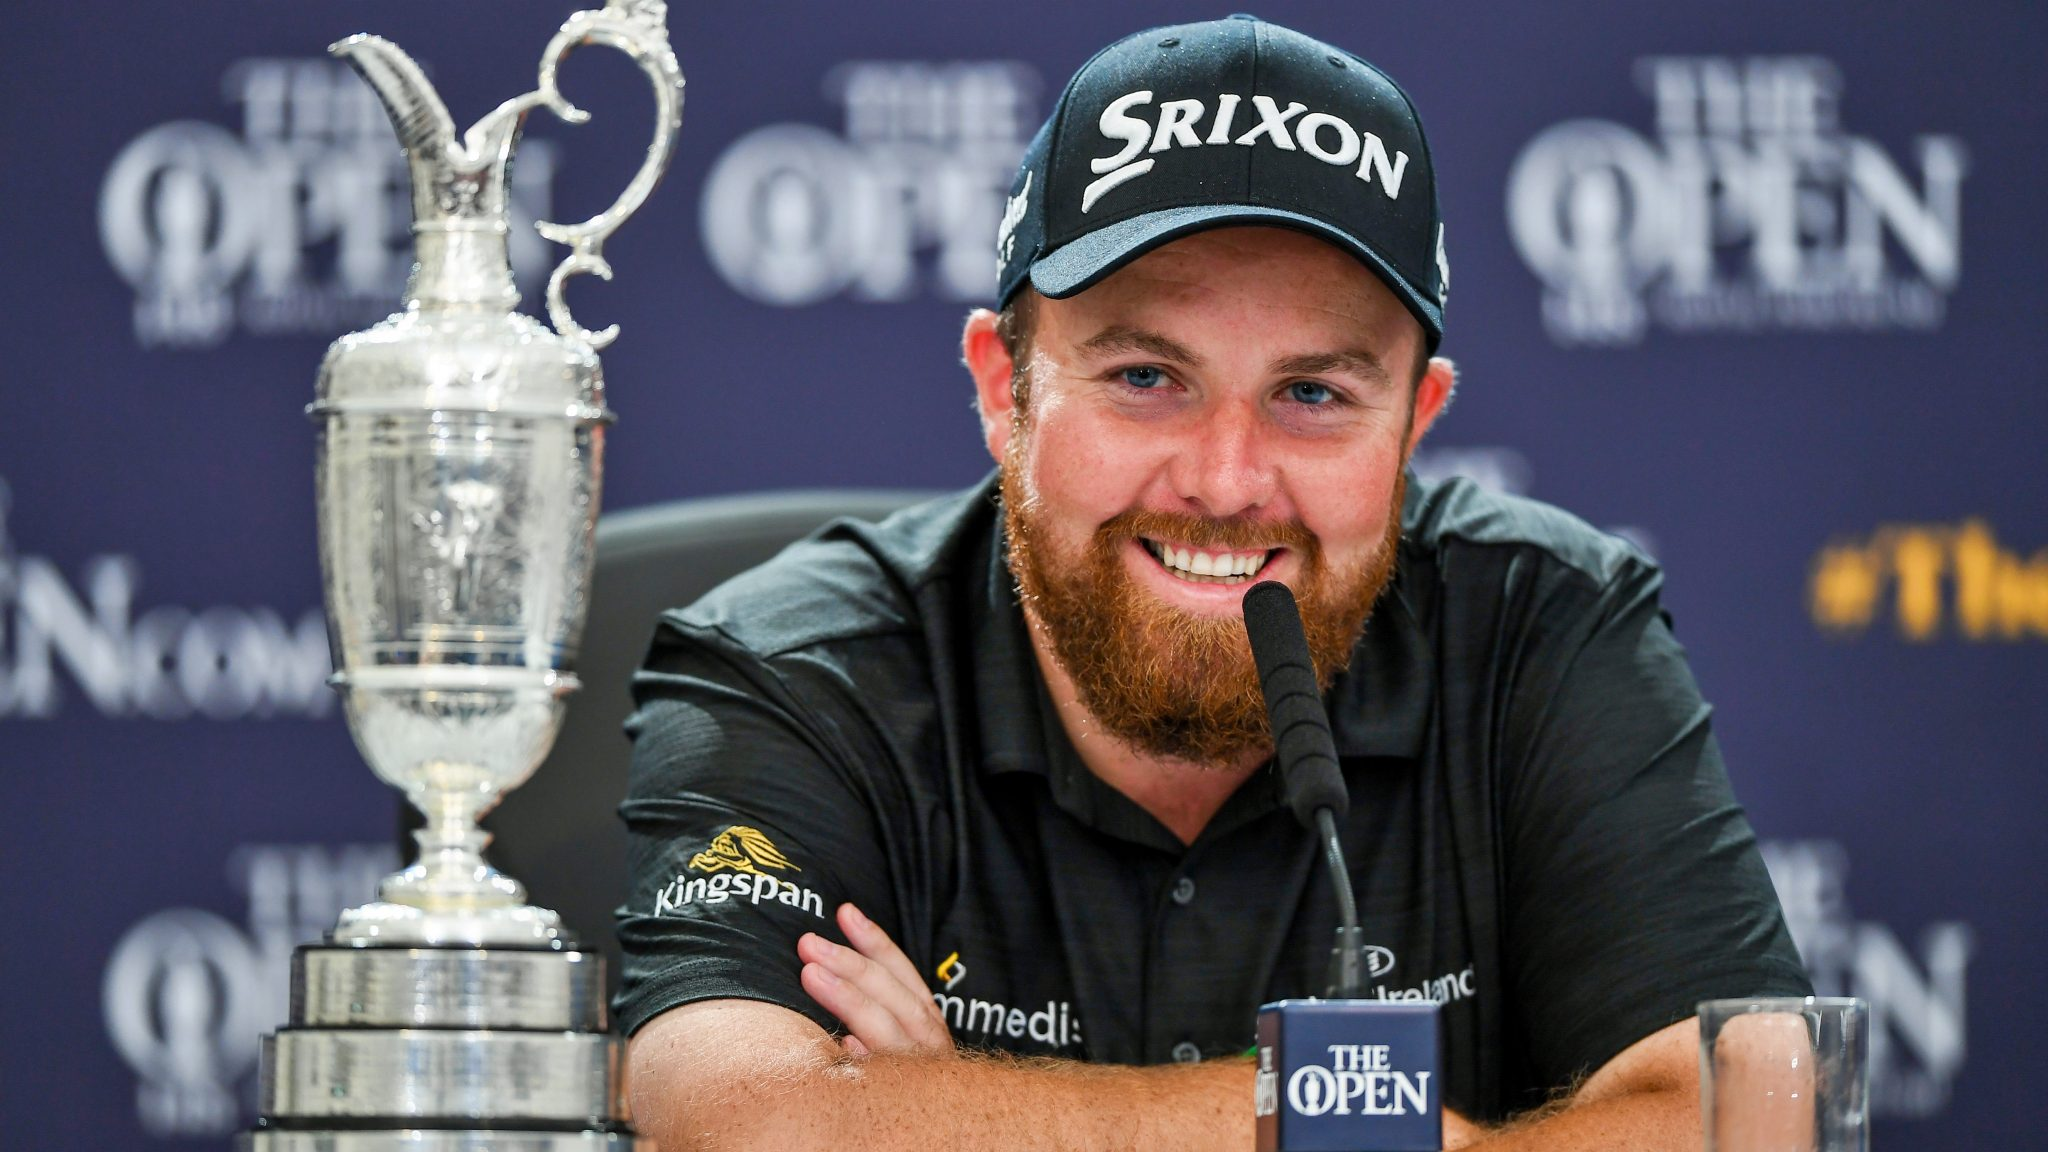 Lowry's British Open win caps off big golf year in majors